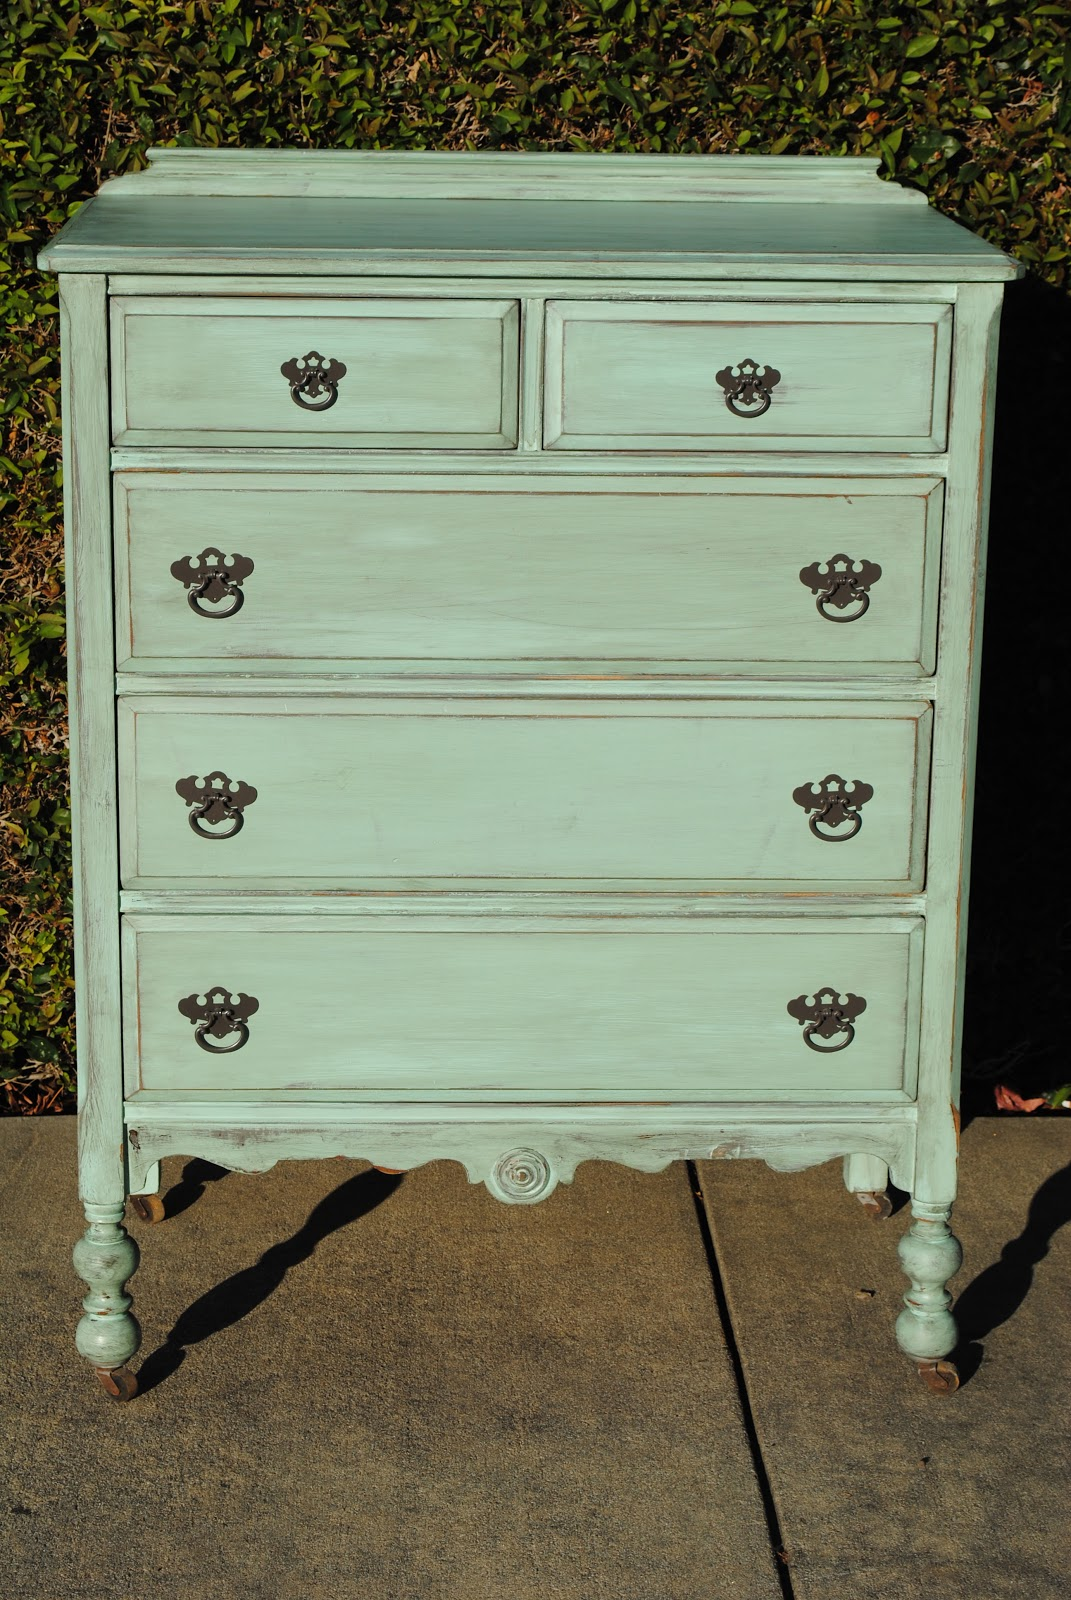 Just As Lovely... Upcycled Furniture: Mint Green Shabby ...